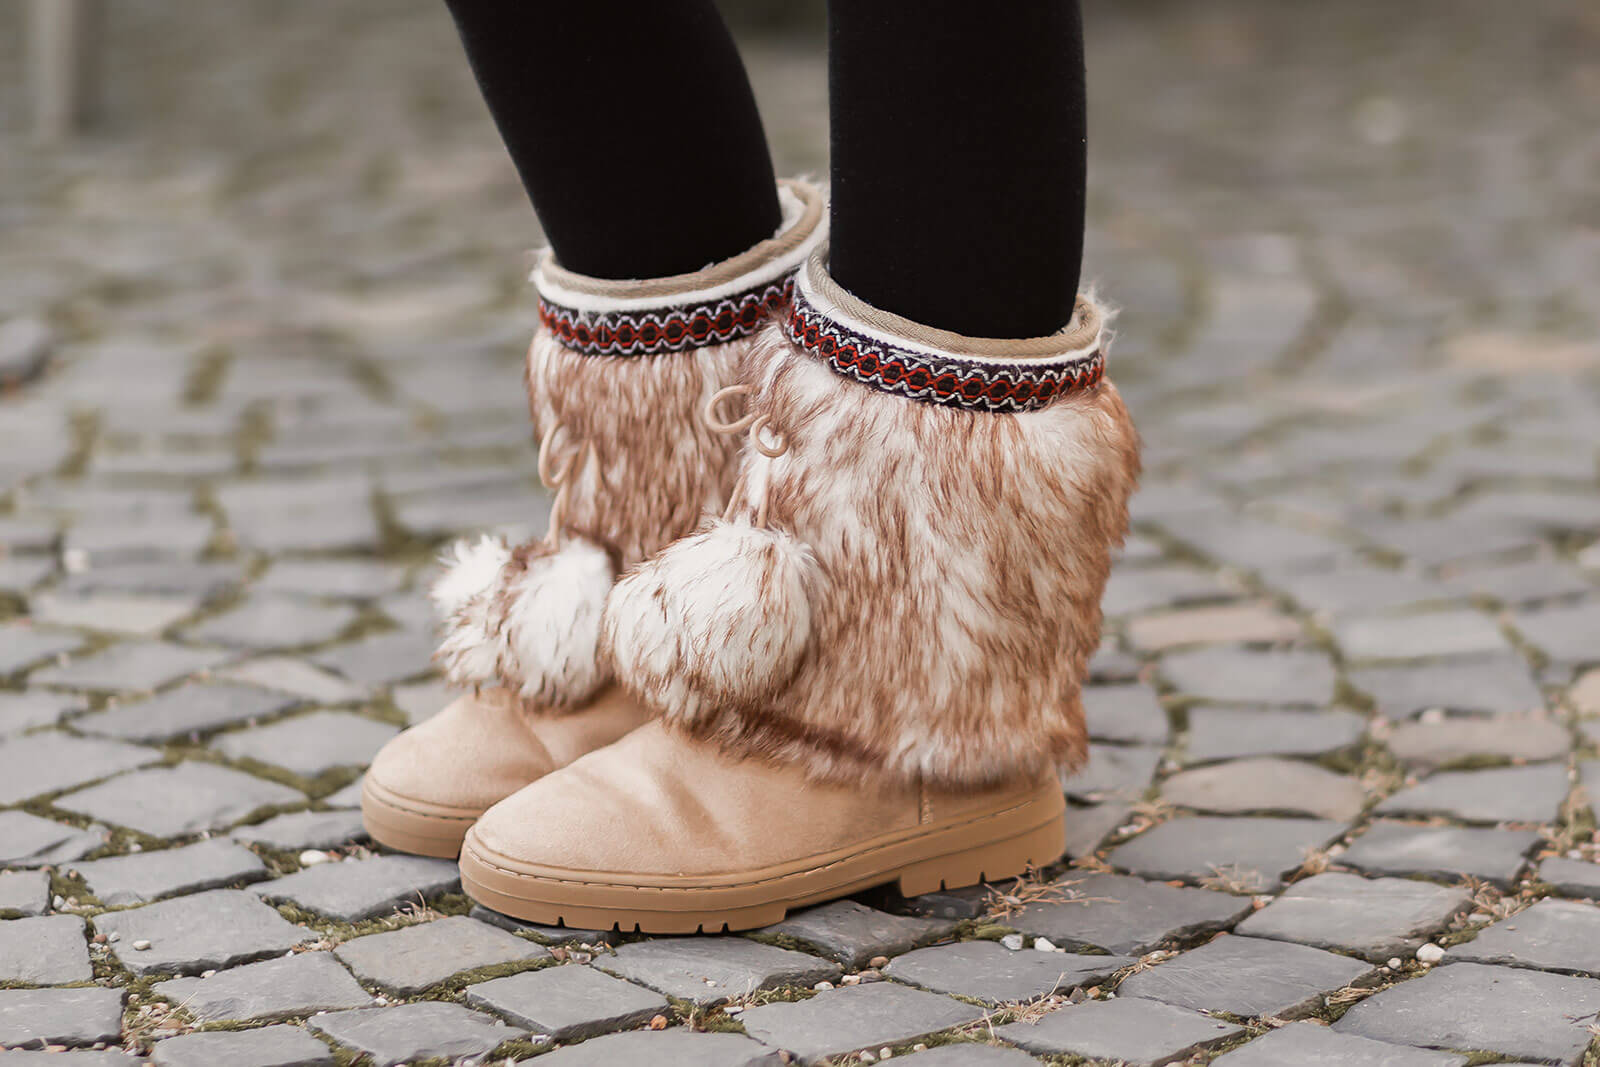 Stiefel Trends 2020, Fell Boots, Shoelove by Deichmann